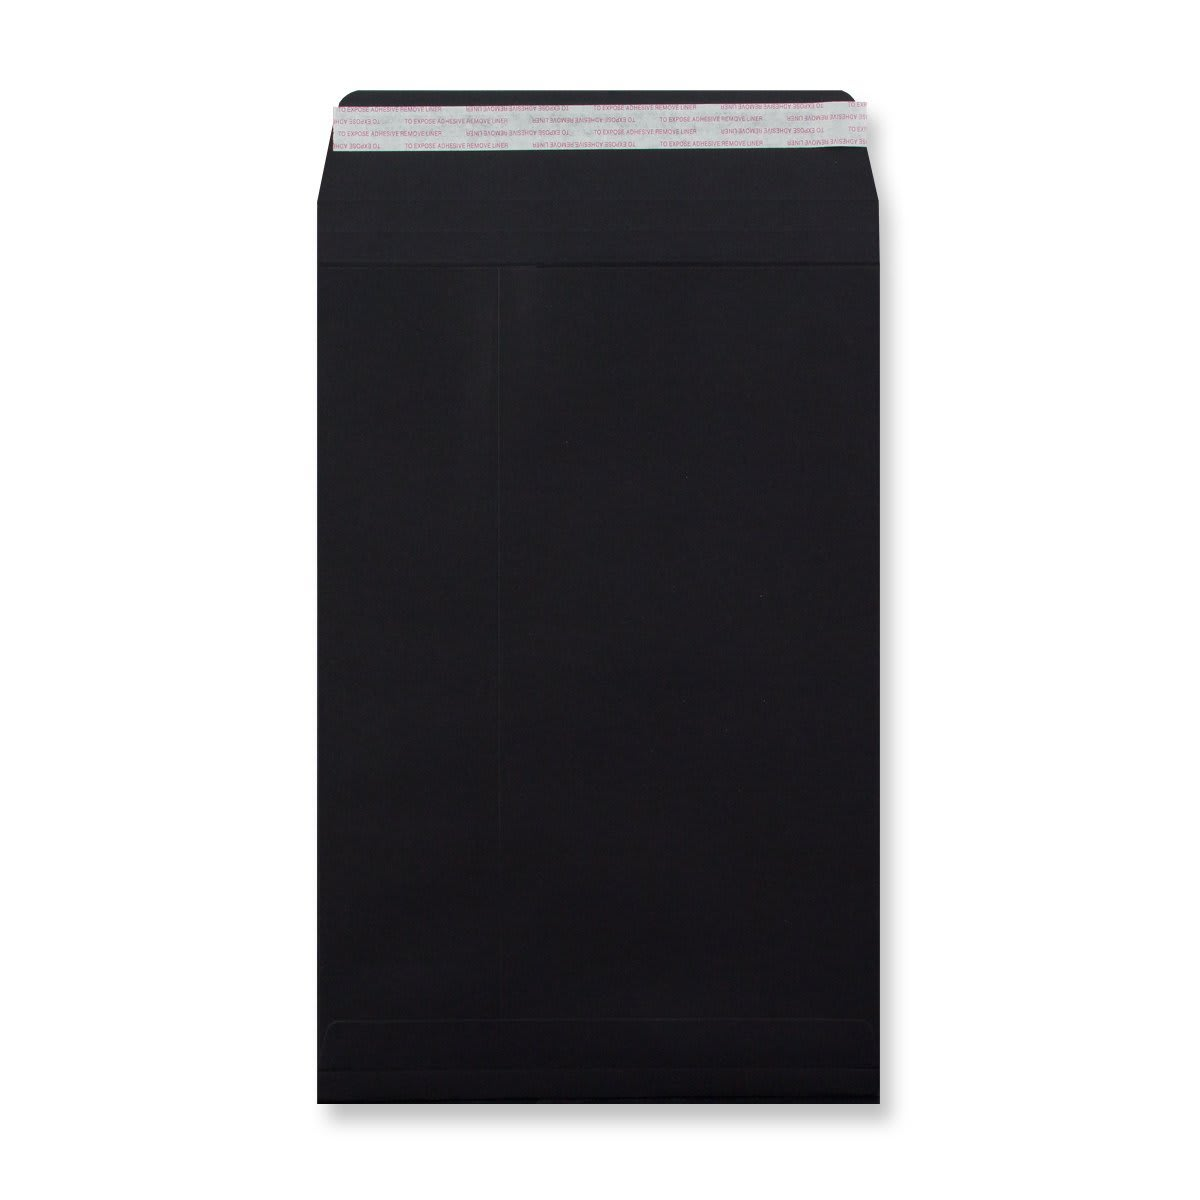 C4 BLACK GUSSET ENVELOPES